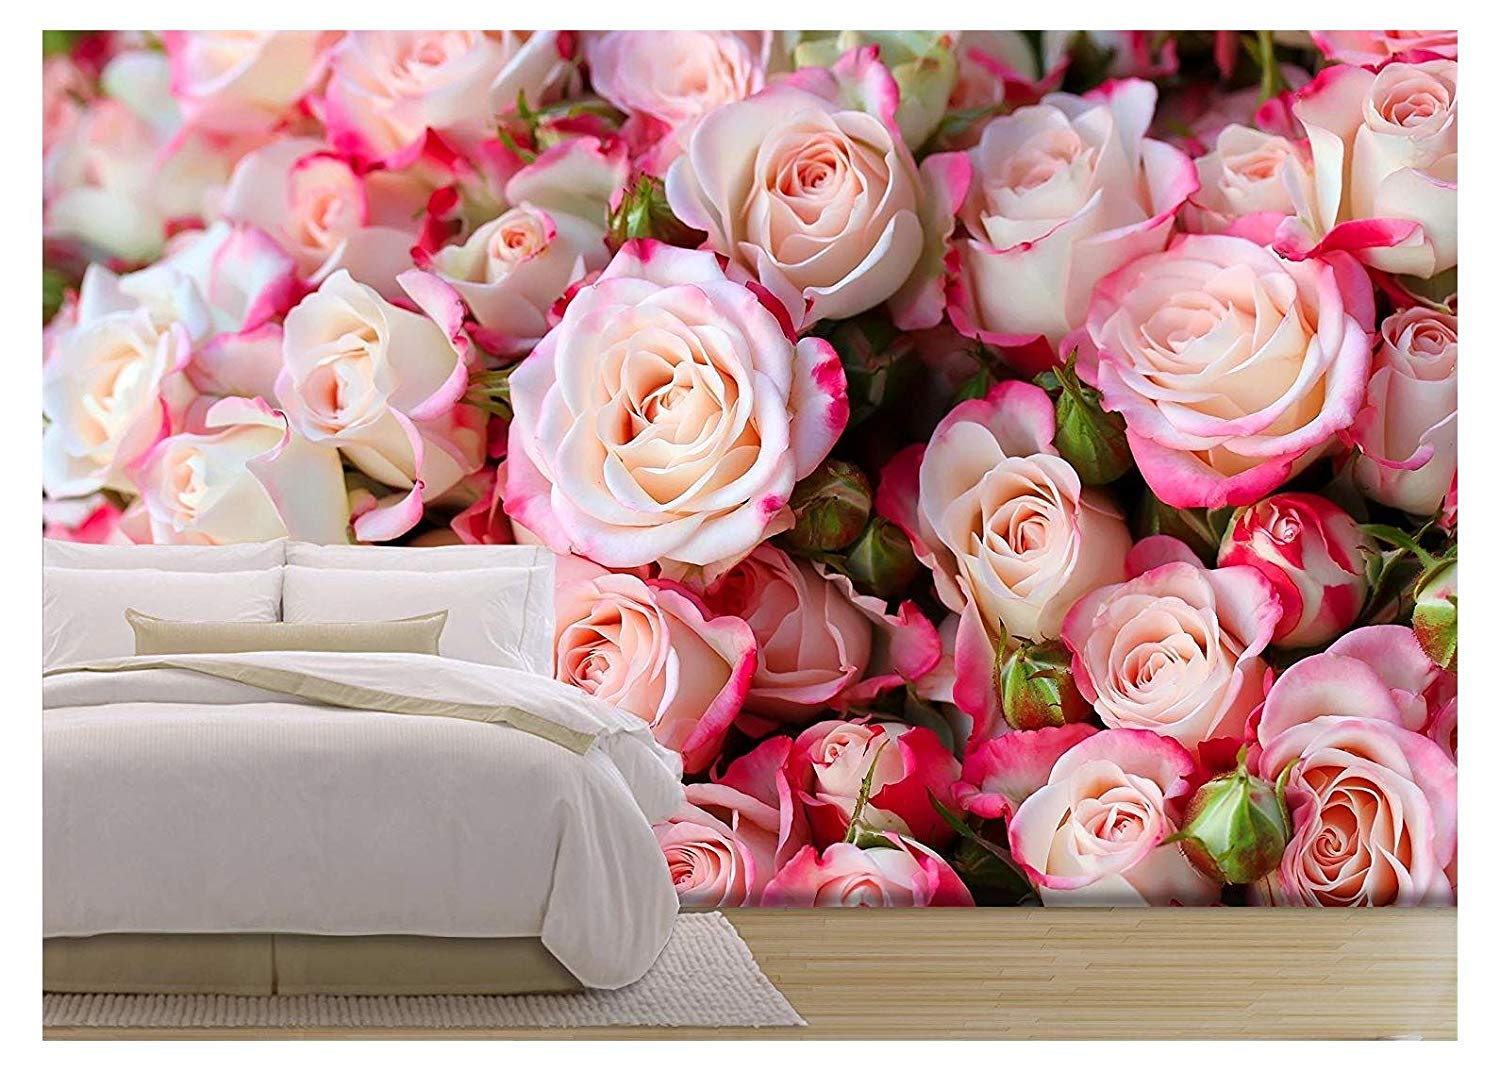 wall26 - Roses Background - Removable Wall Mural | Self-Adhesive Large Wallpaper - 100x144 inches by wall26 (Image #1)